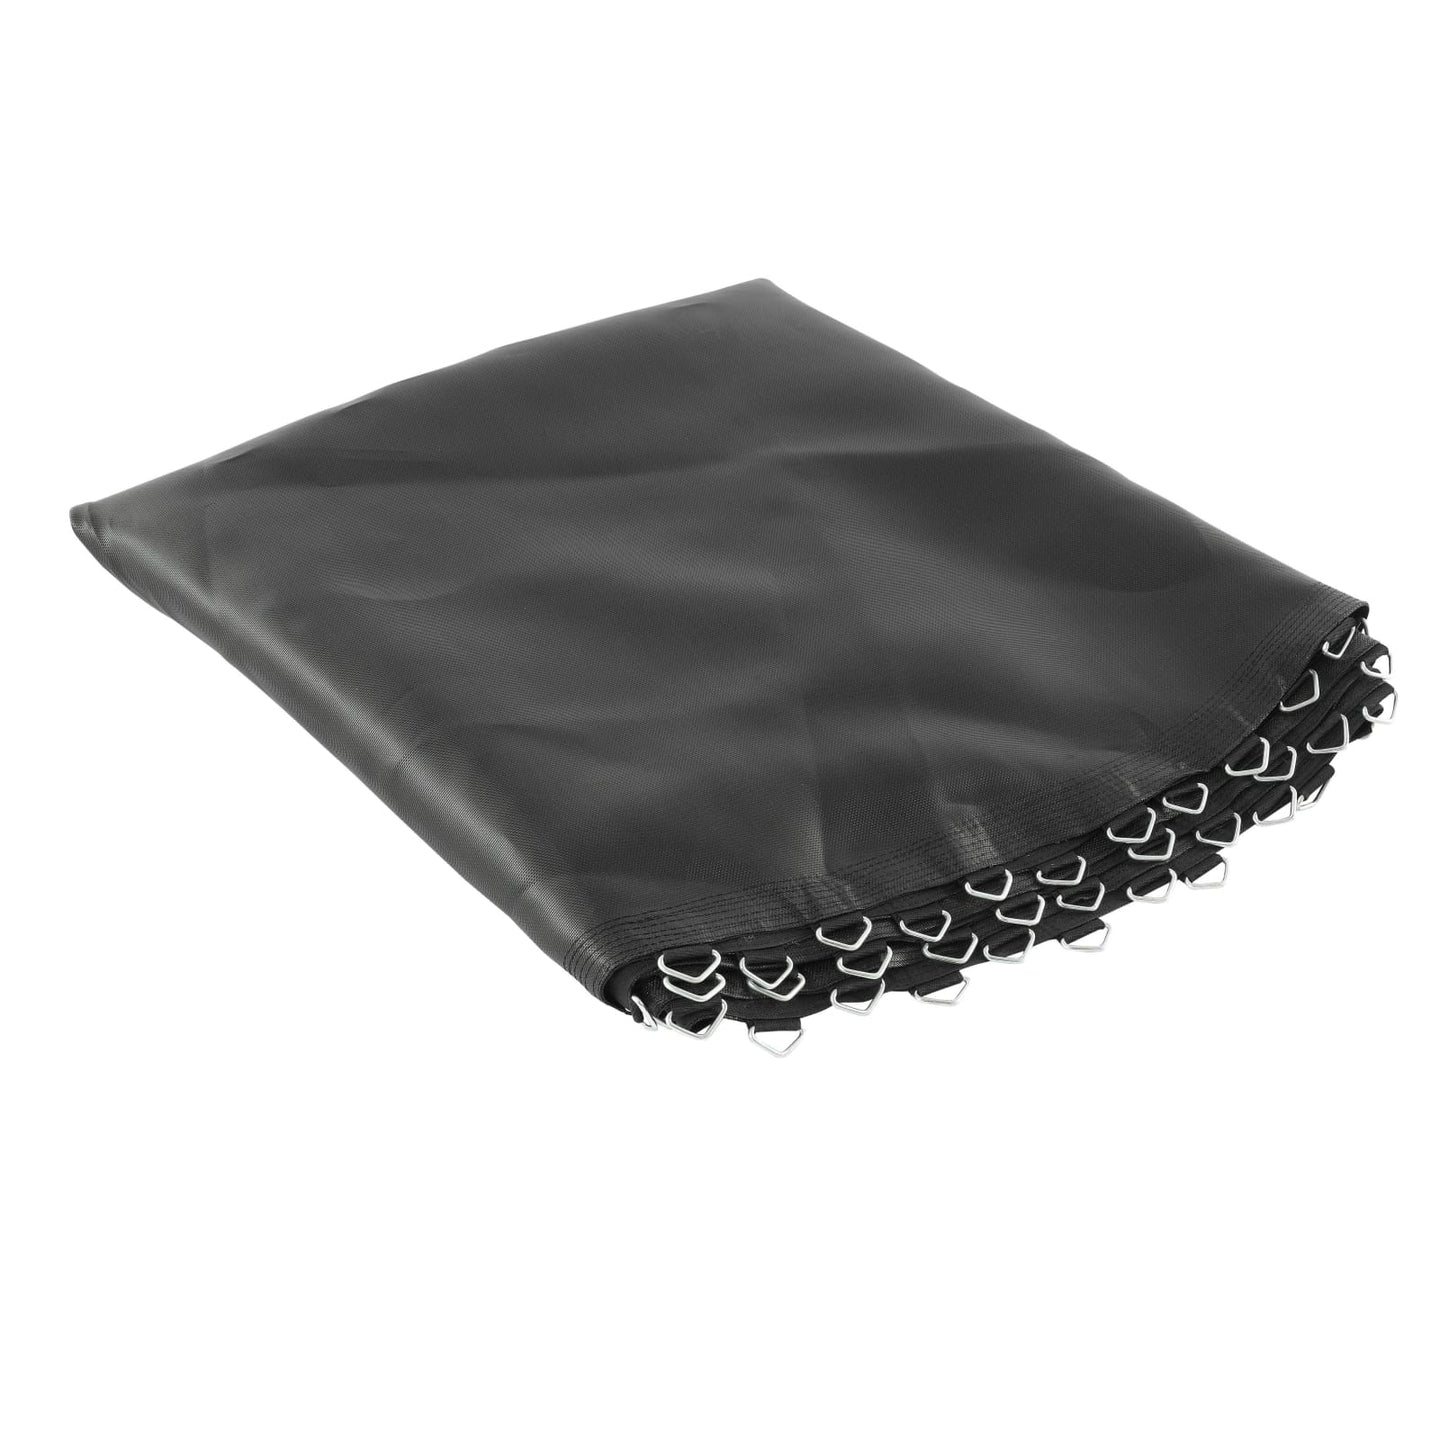 Upper Bounce Trampoline Replacement Jumping Mat Fits For 14 Ft. Round Frames W/ 96 V-Rings 7 Springs - Trampoline Replacements